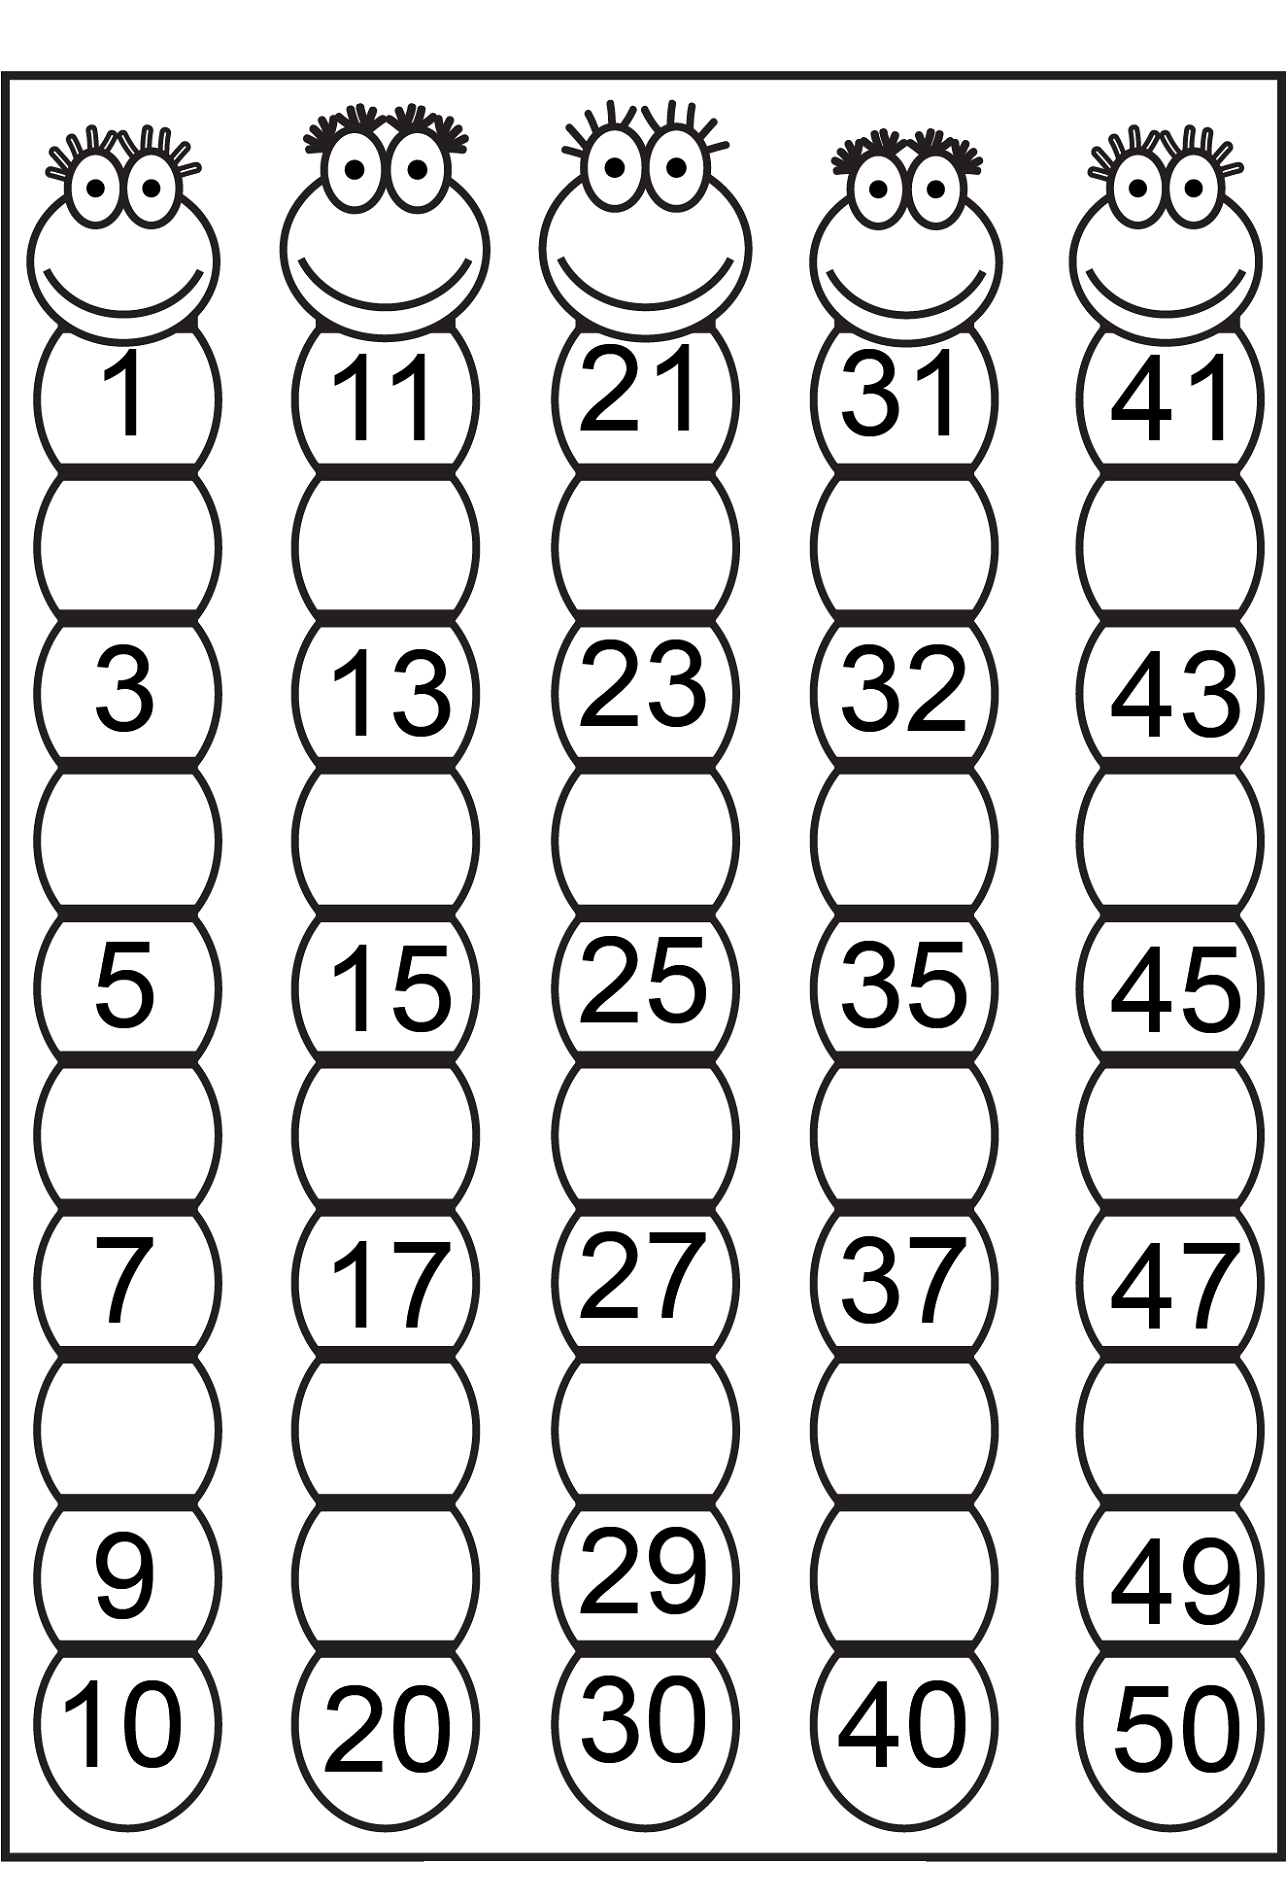 Number Charts 1 50 To Print